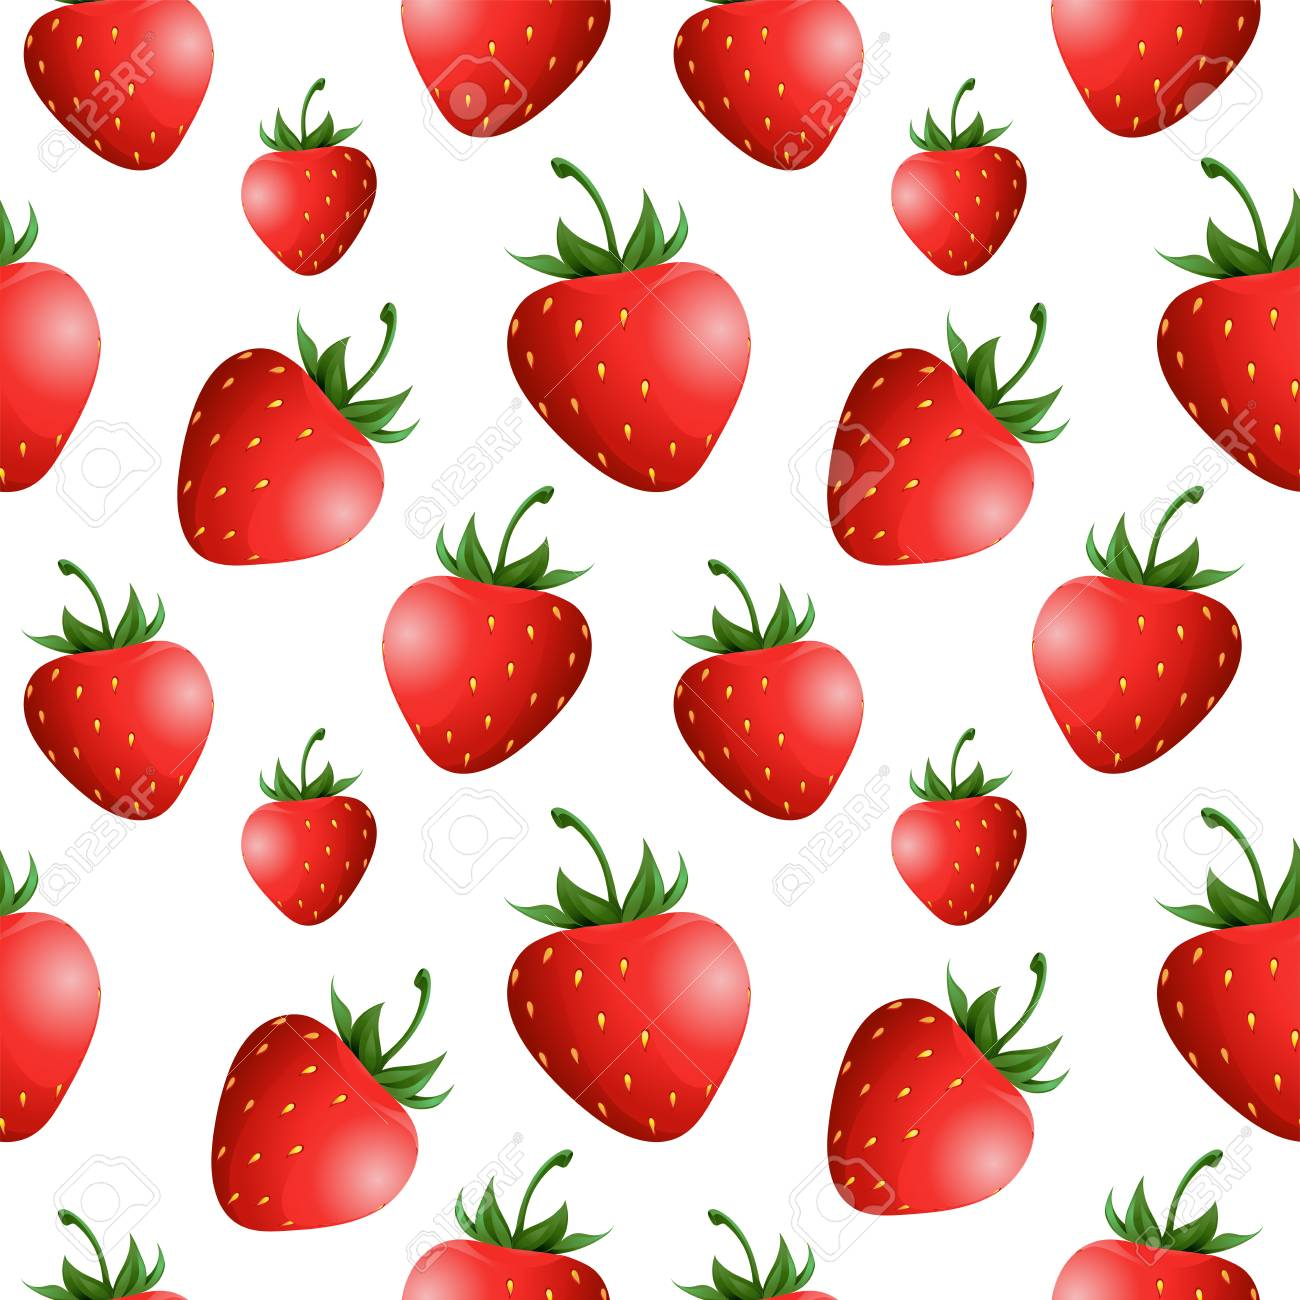 strawberry seamless pattern design templates for textiles